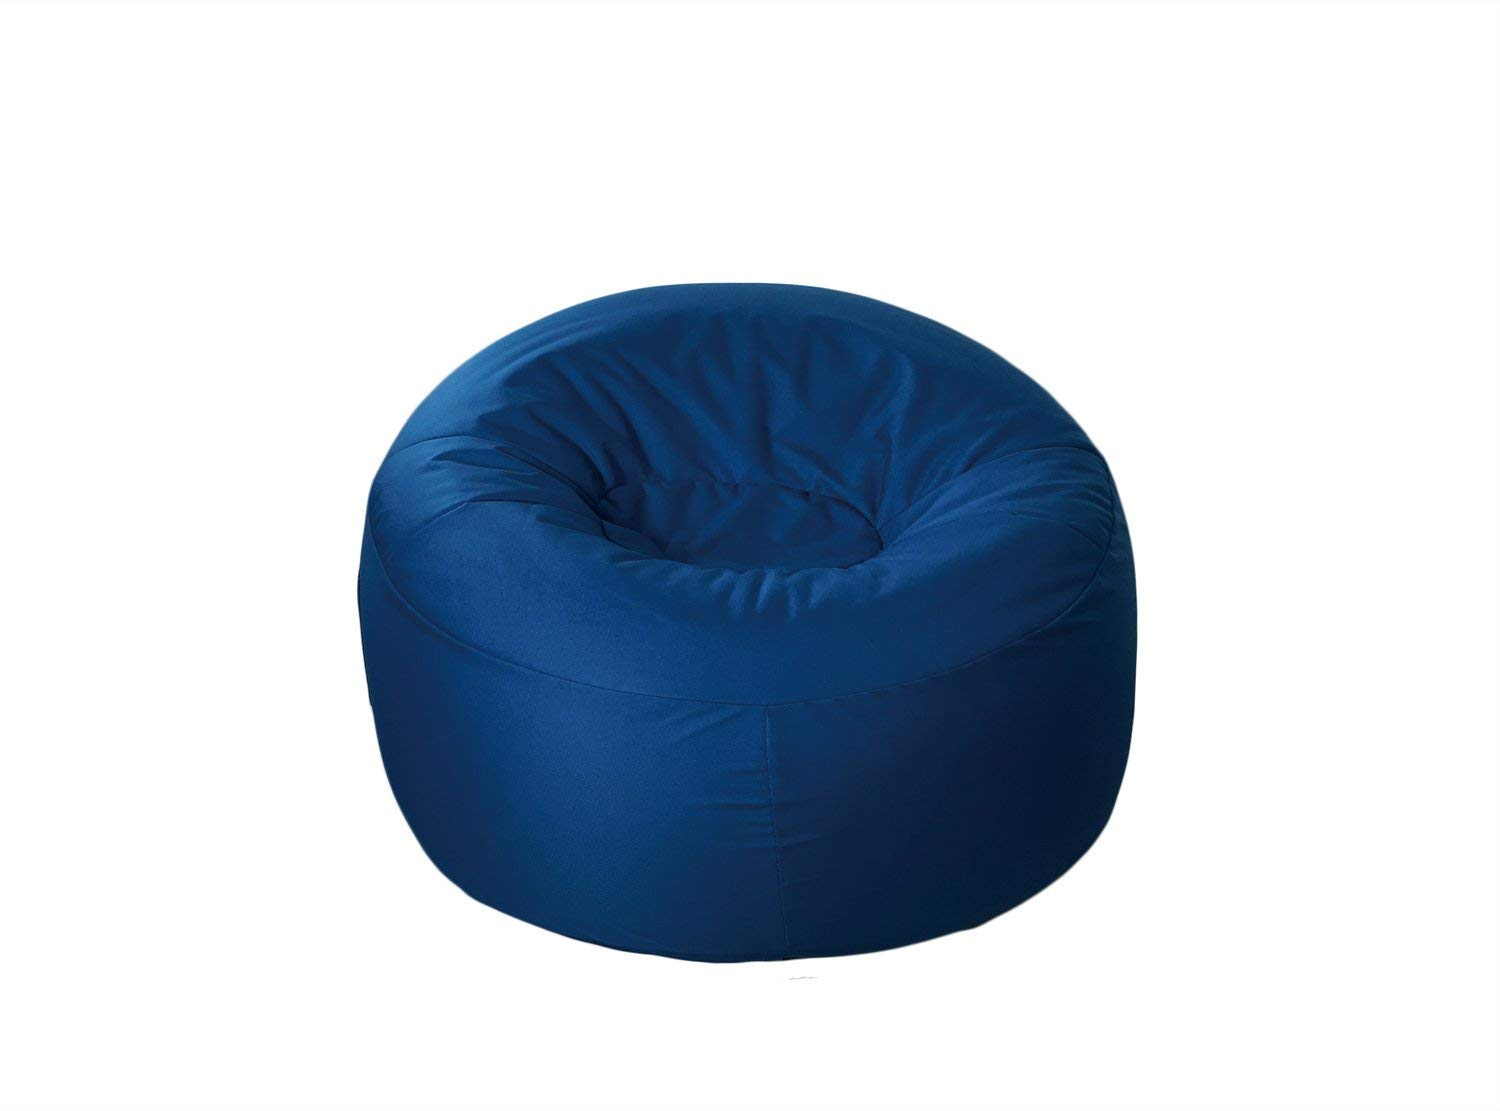 inflatable lawn chair mini electric wheelchair cheap lounge find deals on get quotations 40 blue round outdoor patio with cover